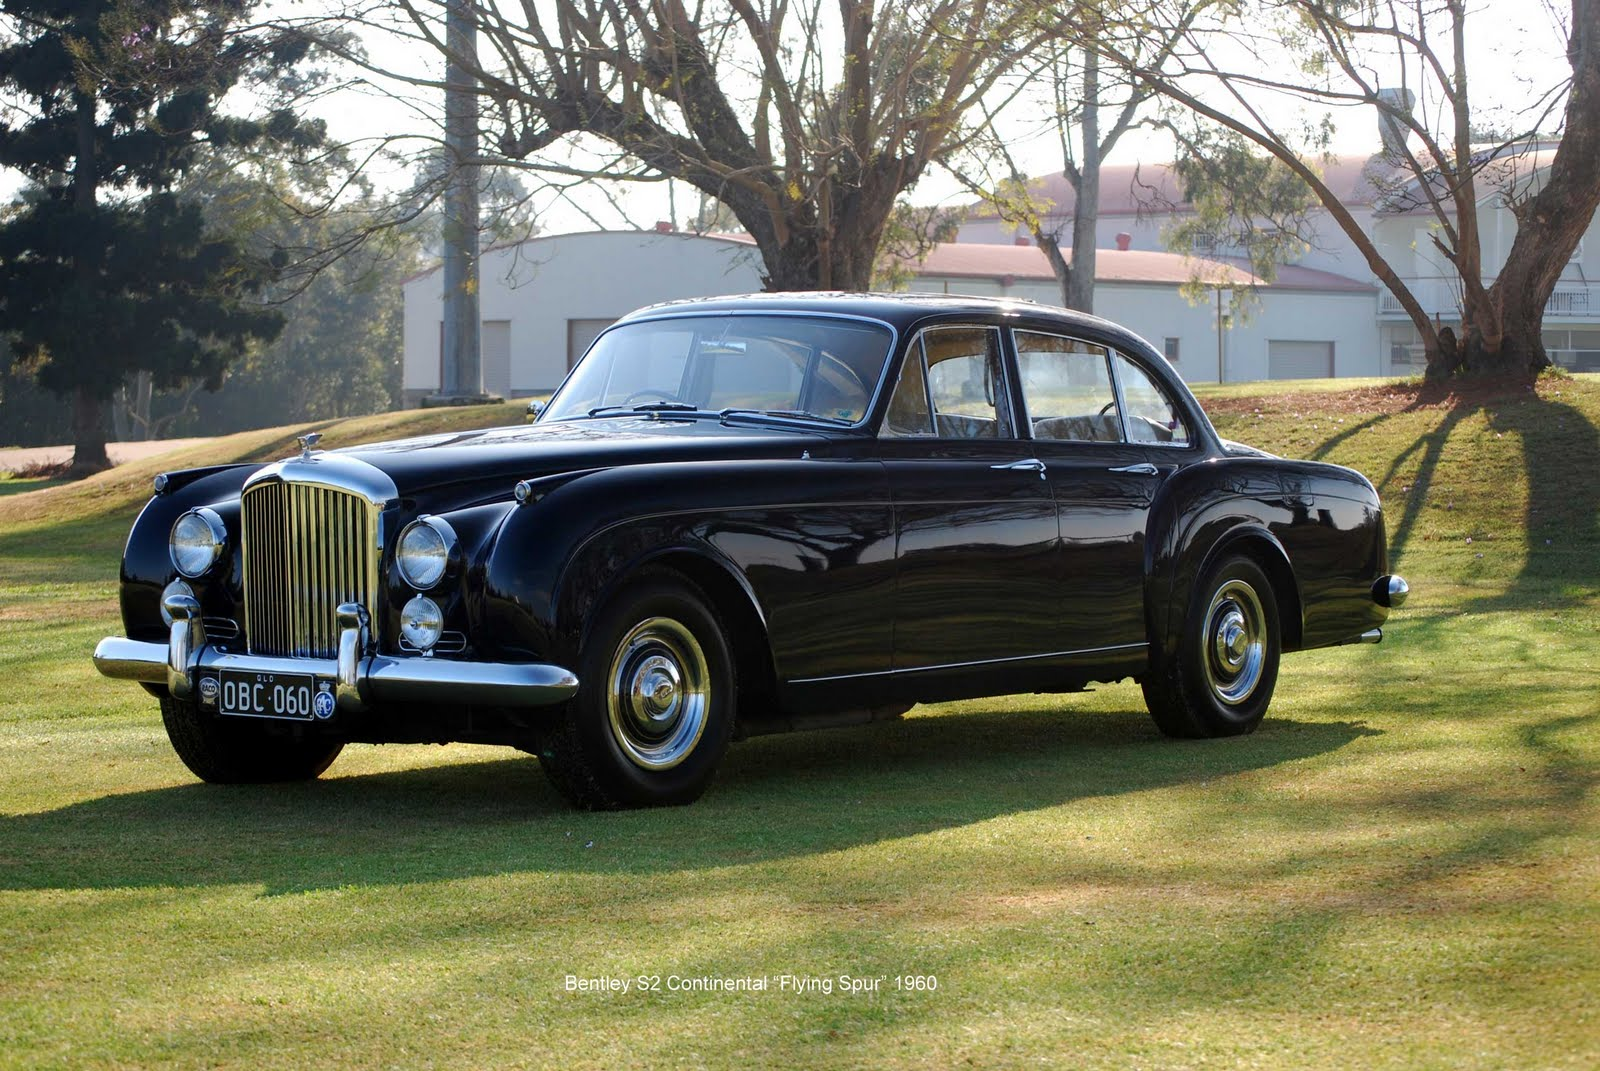 bentley s2 continental flying spur #4